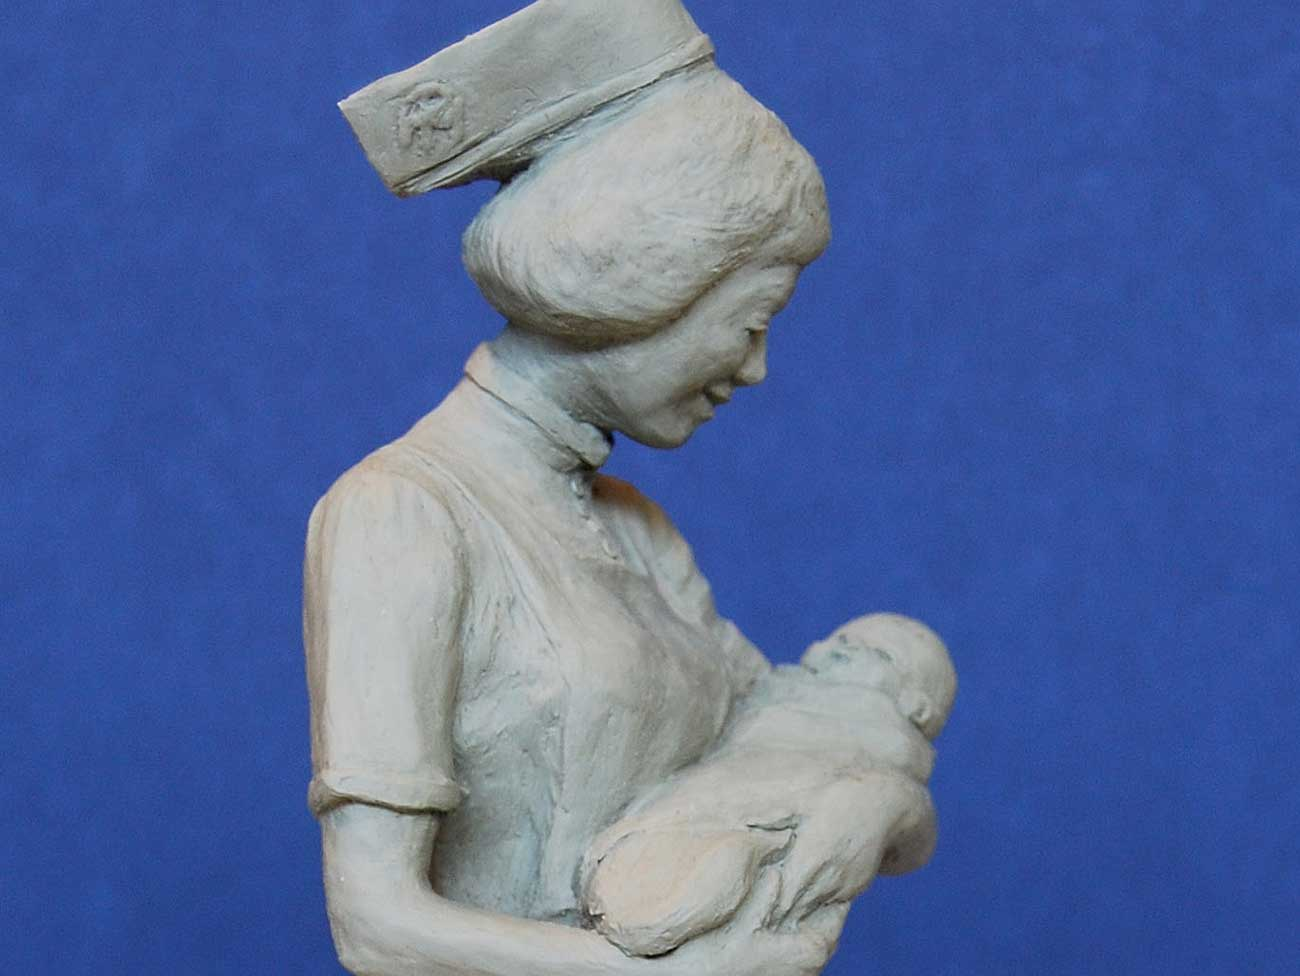 Clay model a nurse holding a baby in her arms.